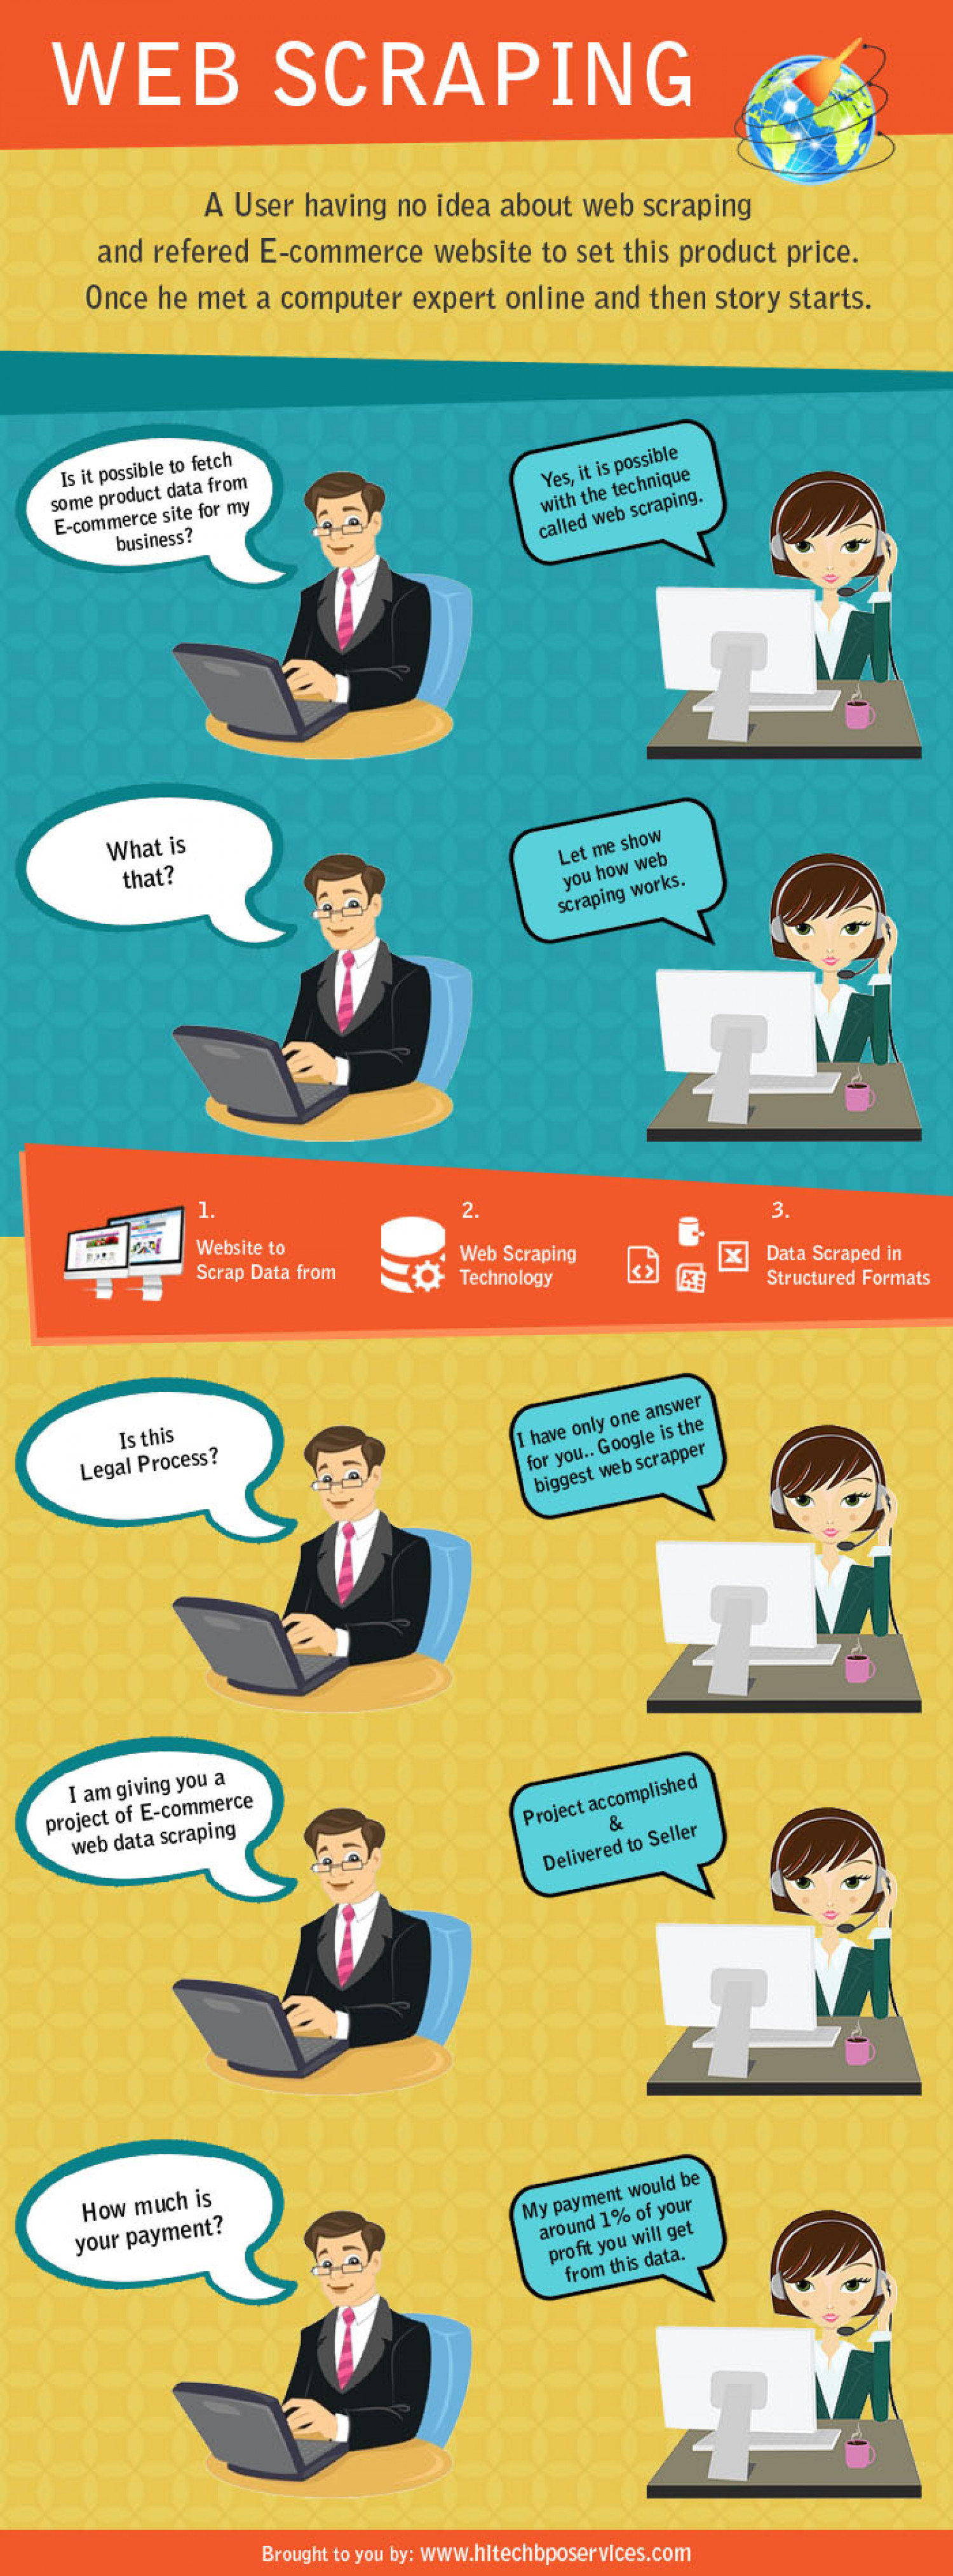 Web Scraping Services, Product Data Extraction for Ecommerce – Hi-Tech BPO Services Infographic